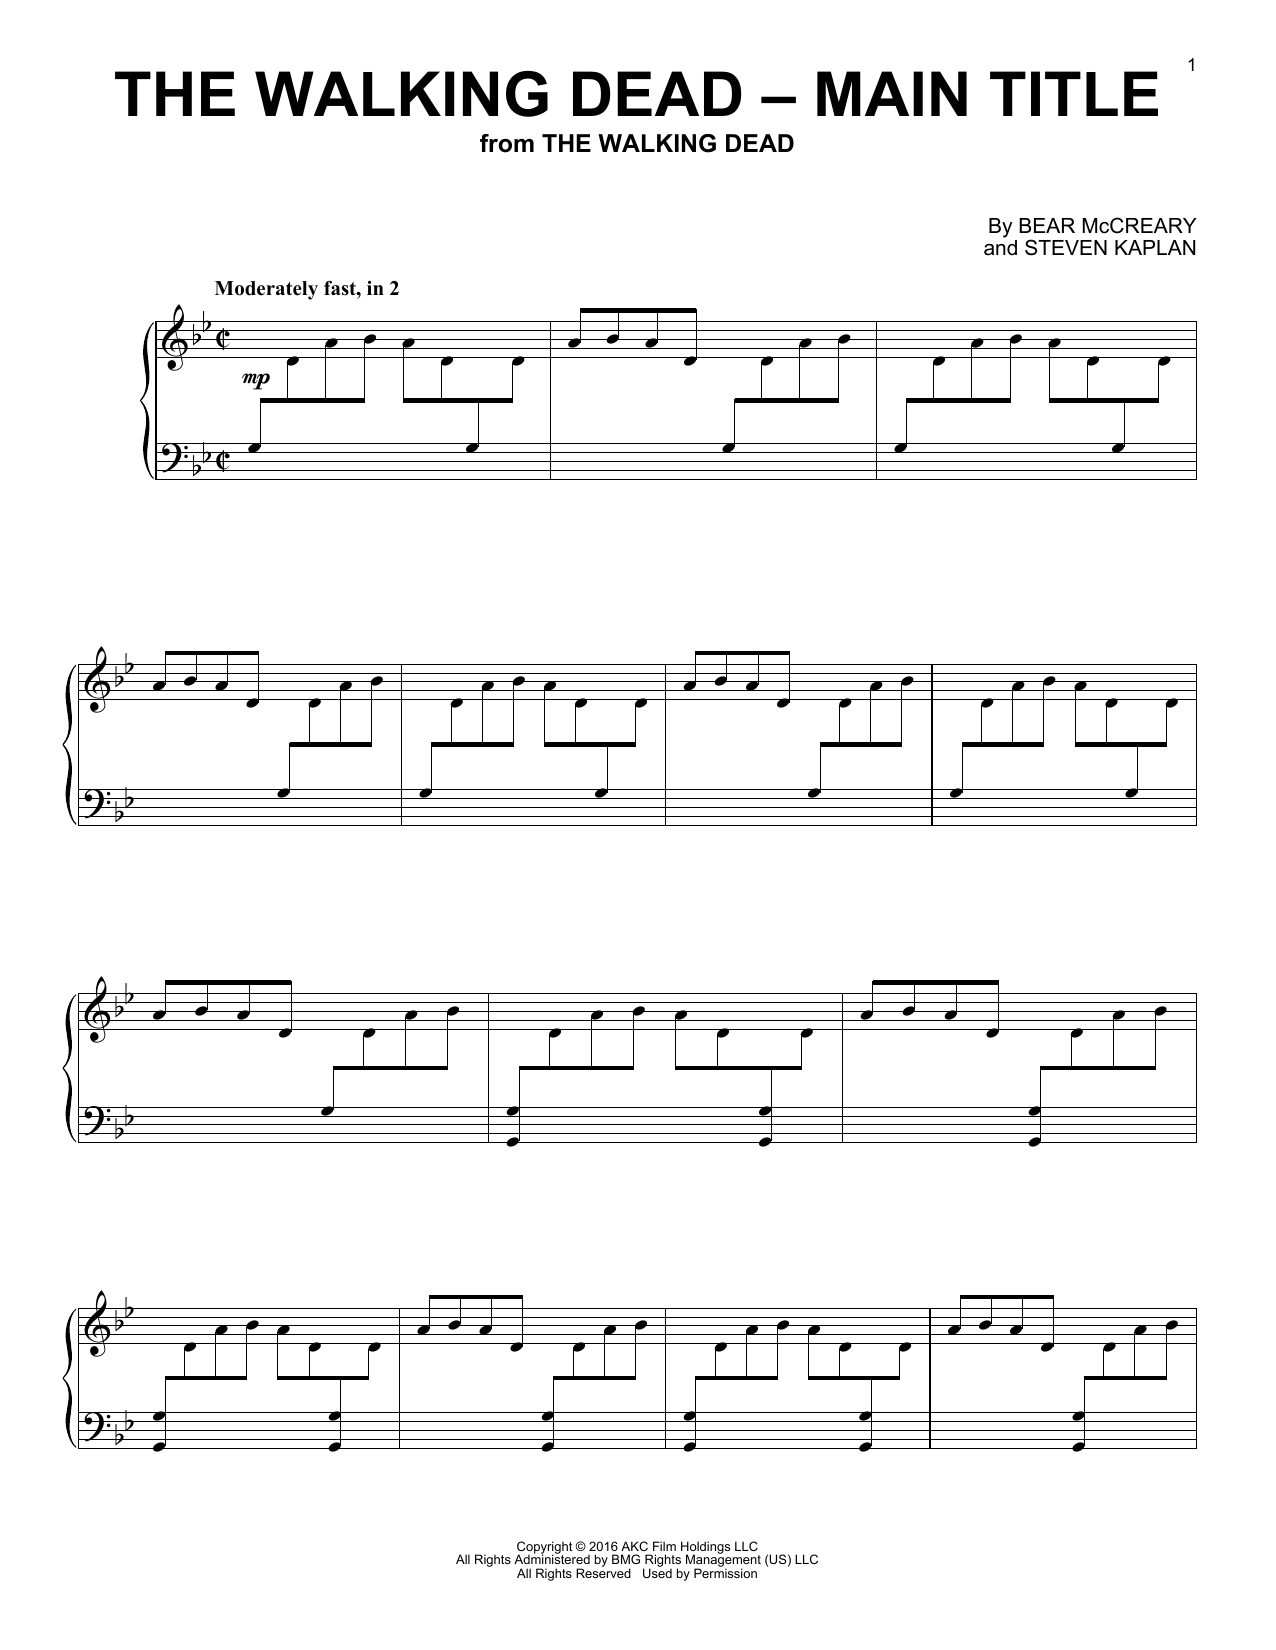 Bear McCreary 'The Walking Dead - Main Title' Sheet Music Notes, Chords |  Download Printable Piano - SKU: 178888